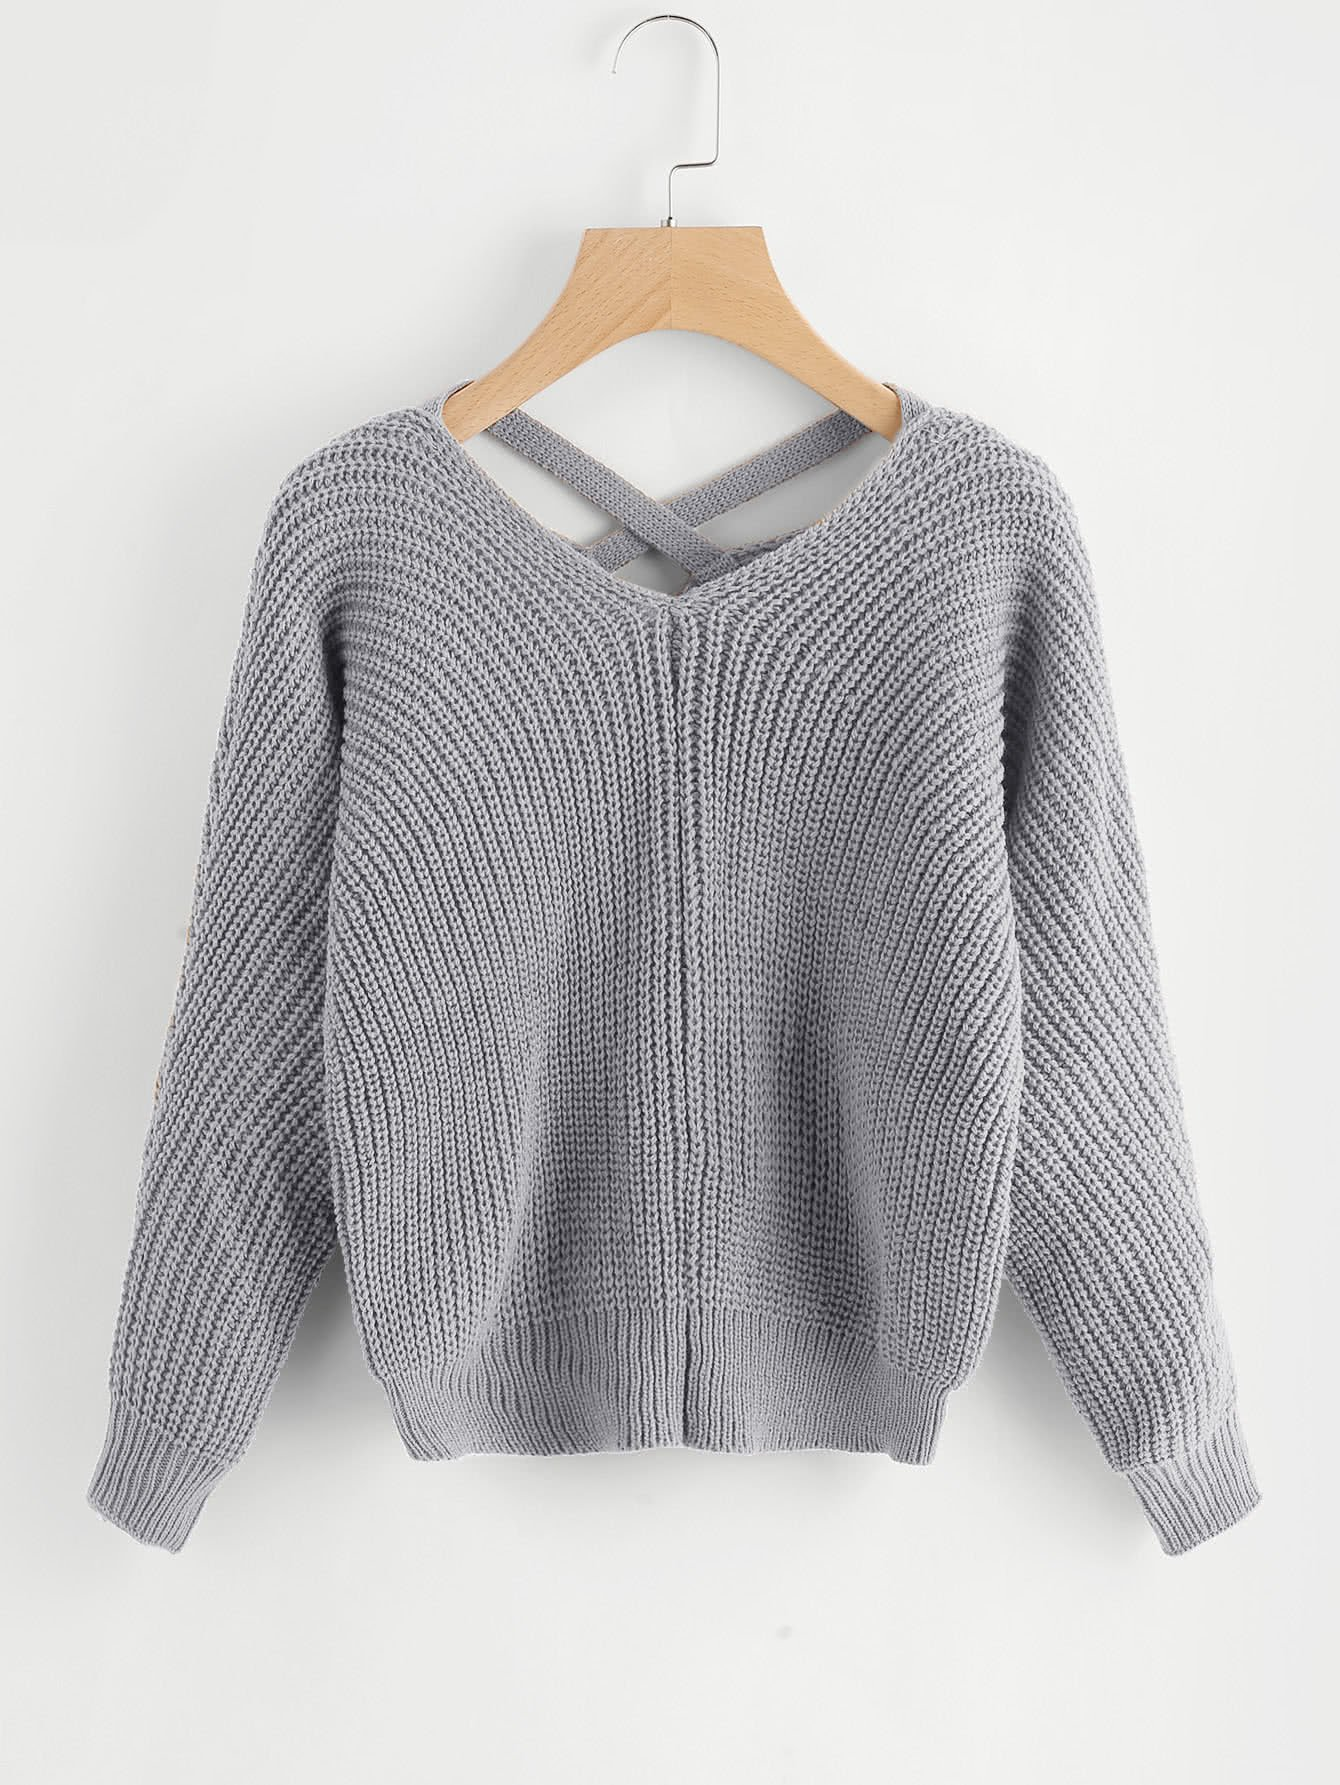 c680afd48d Material  Acrylic Color  Grey Pattern Type  Plain Neckline  V Neck Style   Casual Types  Loose Items  Pullovers Sleeve Length  Long Sleeve Fabric   Fabric is ...